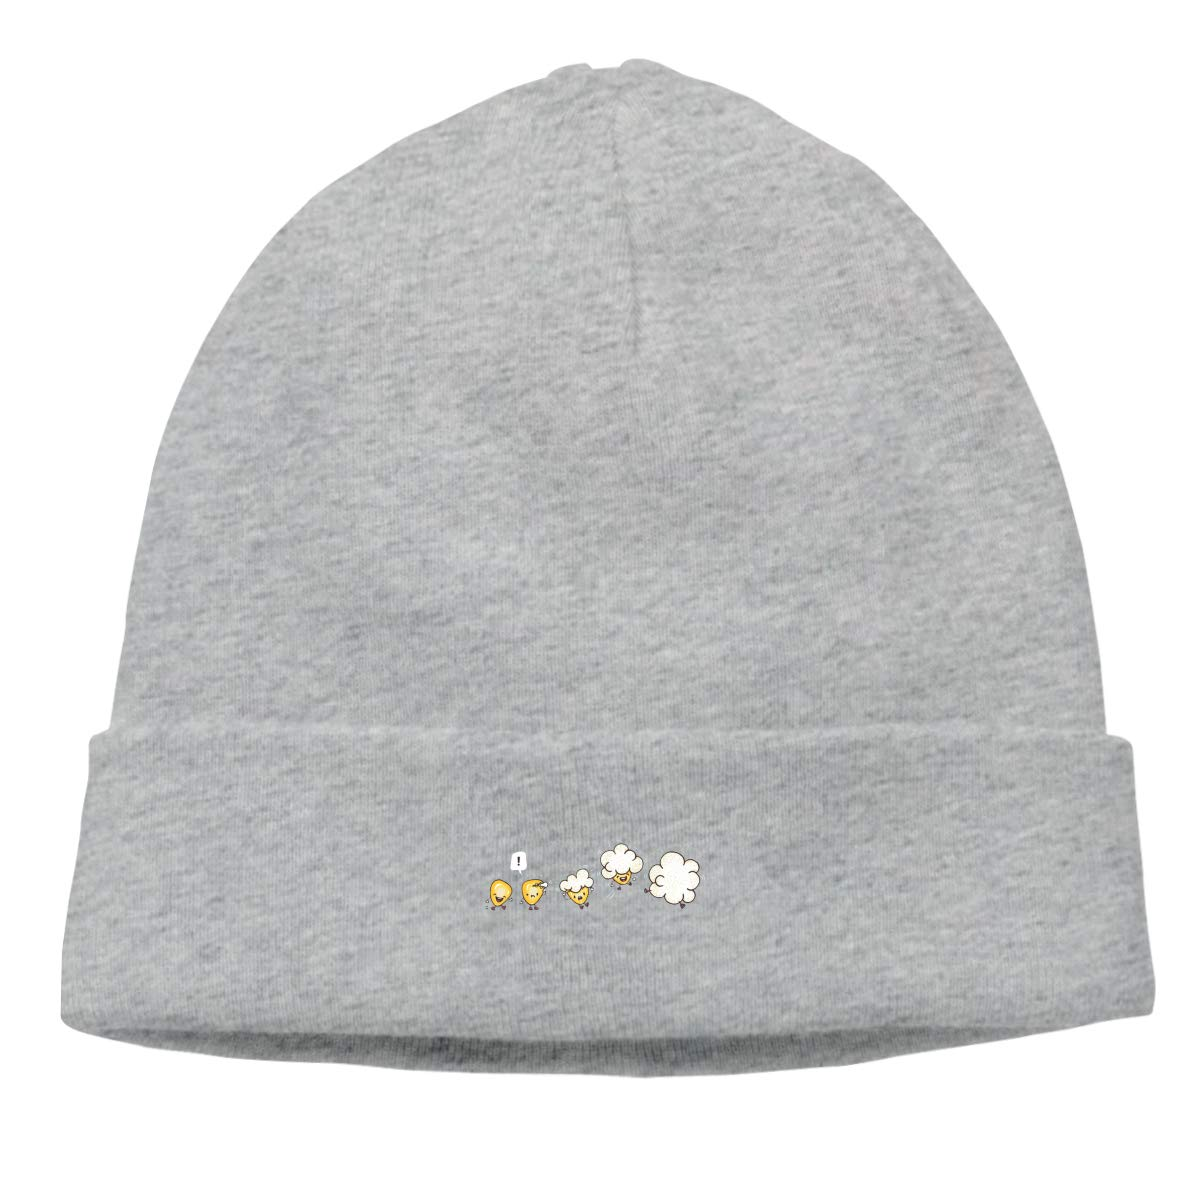 Nskngr How to Become Popcorns Men Winter Summer Deliciously Soft Daily Winter Beanie